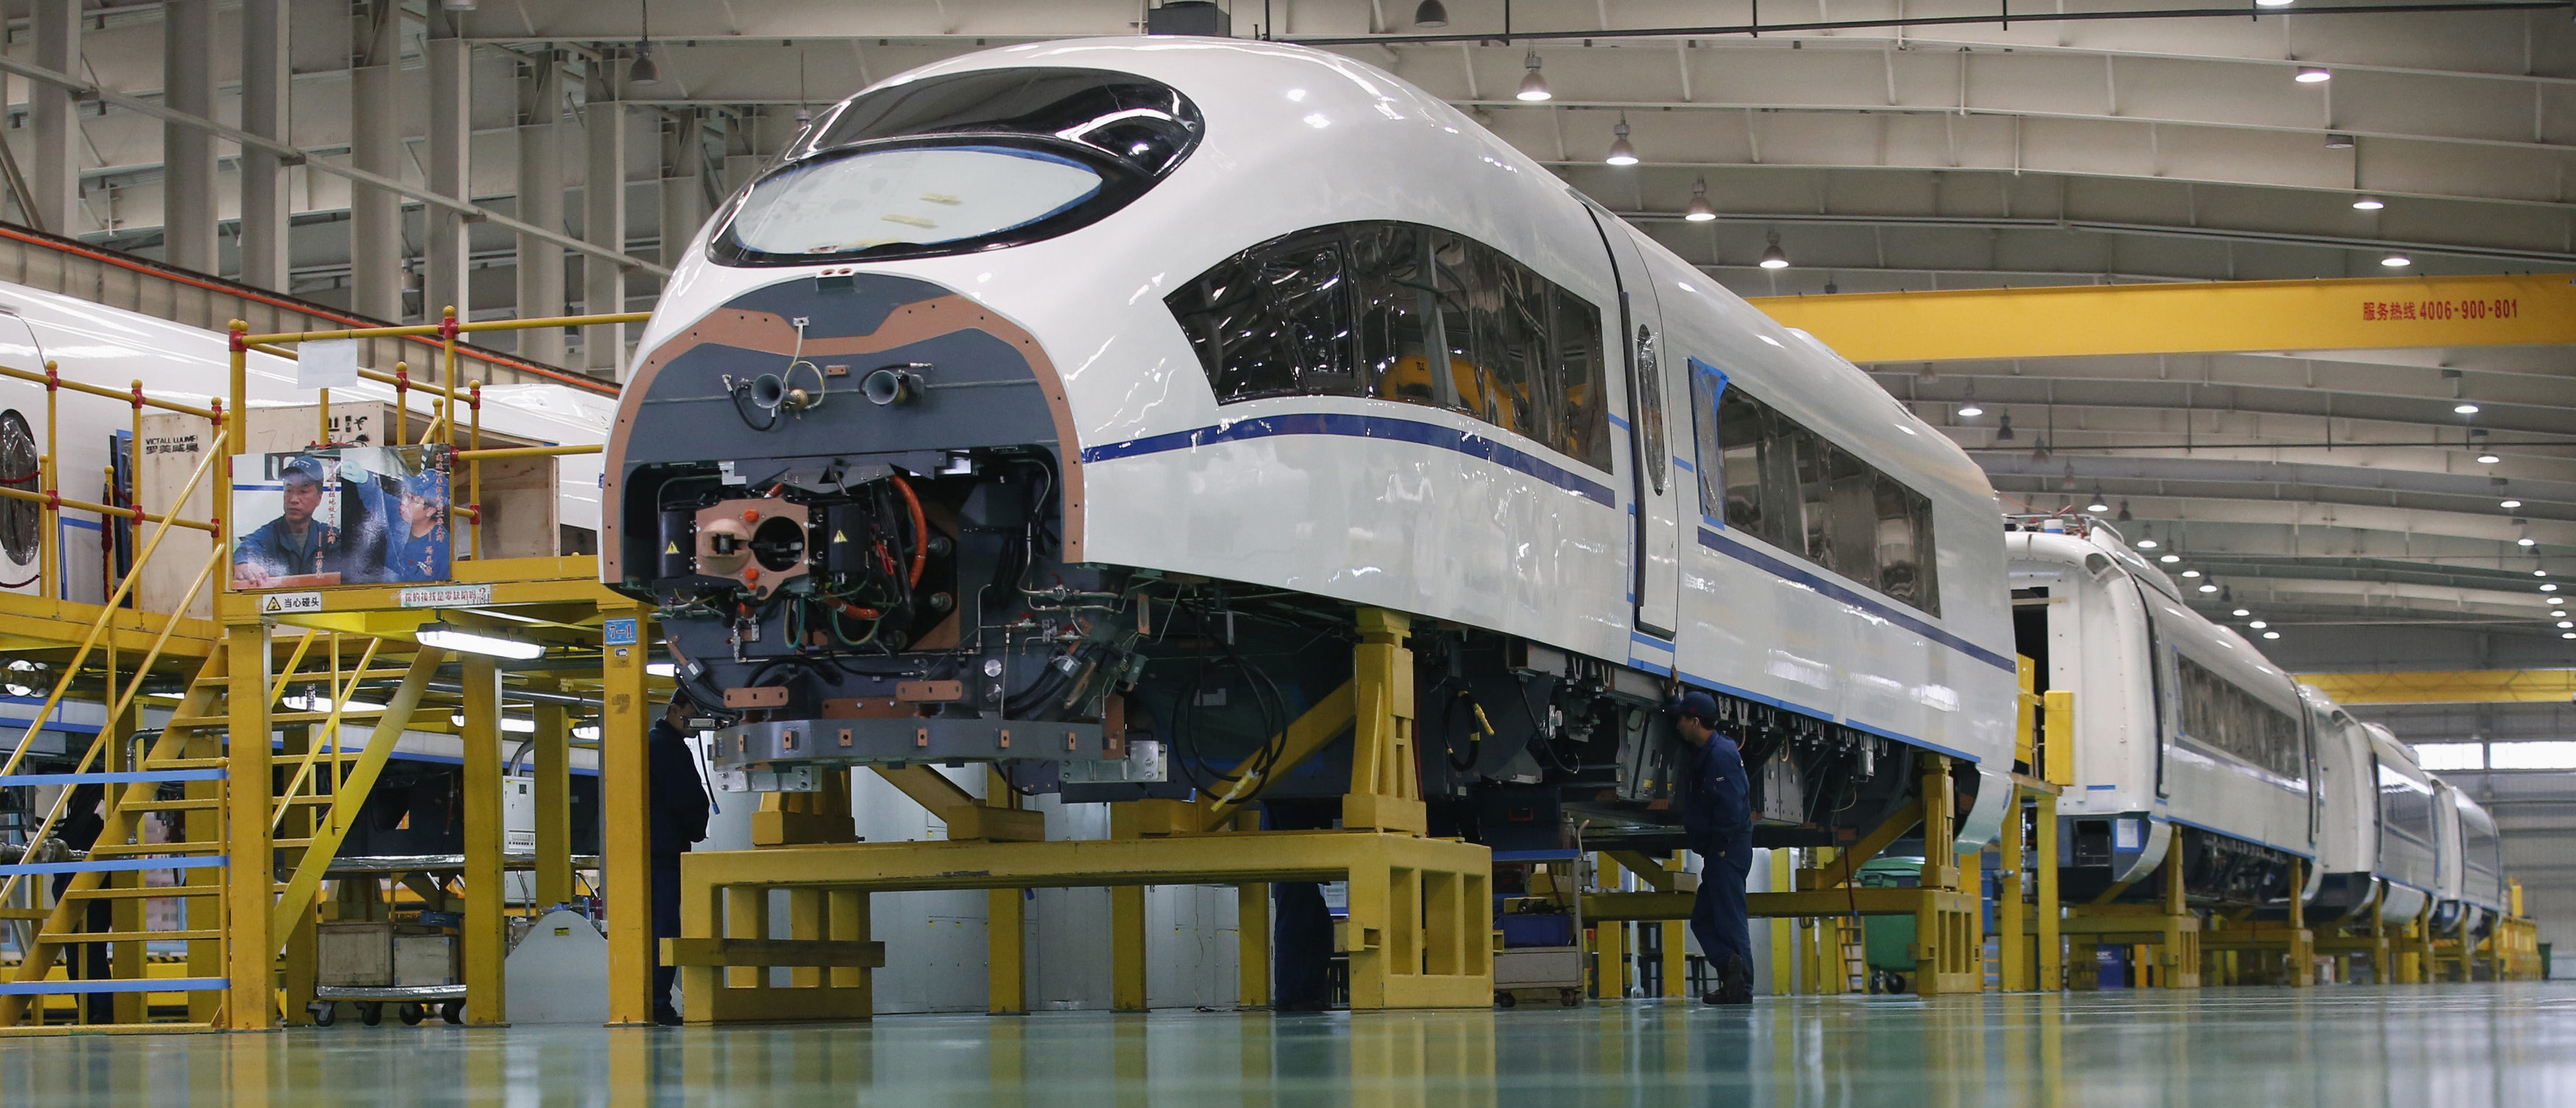 An employee works on a high speed train model CRH380B at a final assembly line of China CNR's Tangshan Railway Vehicle's factory in Tangshan, Hebei province, February 11, 2015. China is in talks with 28 countries including the United States, Russia and Brazil about high-speed rail projects, state-backed trainmaker China CNR said on Wednesday. REUTERS/Kim Kyung-Hoon